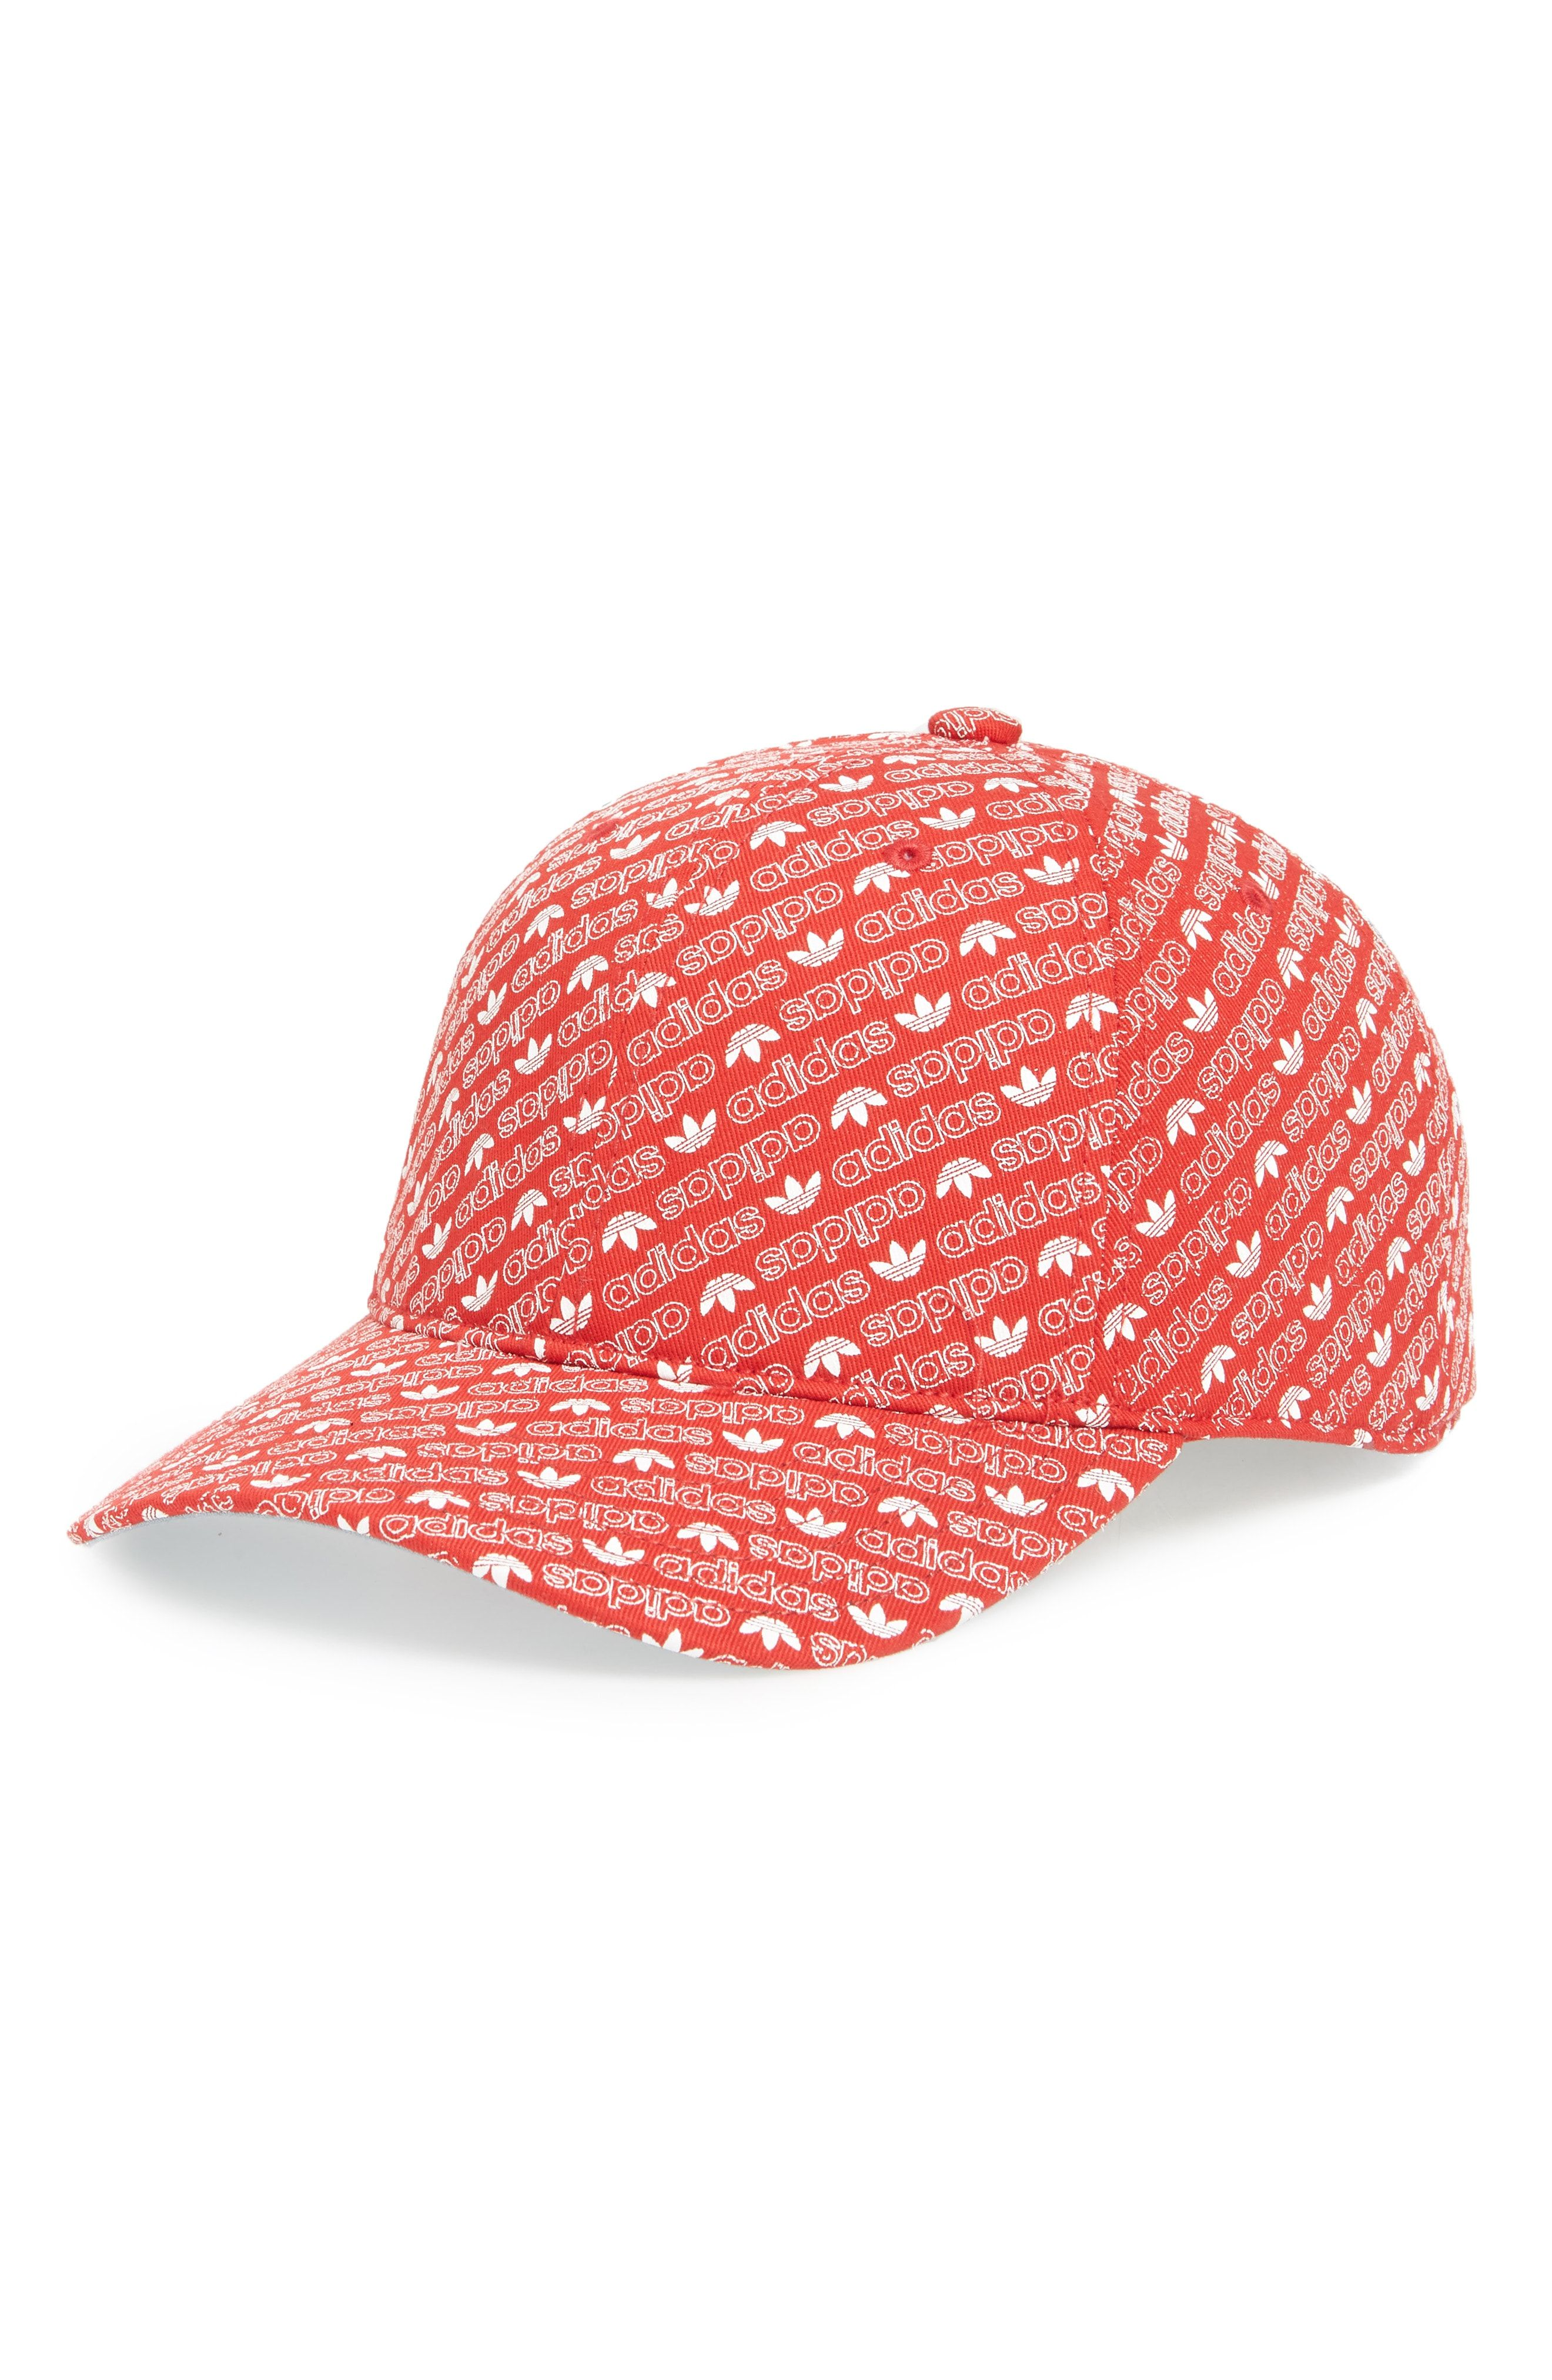 02ee2f05195 ADIDAS ORIGINALS RELAXED COTTON BASEBALL CAP - RED.  adidasoriginals ...